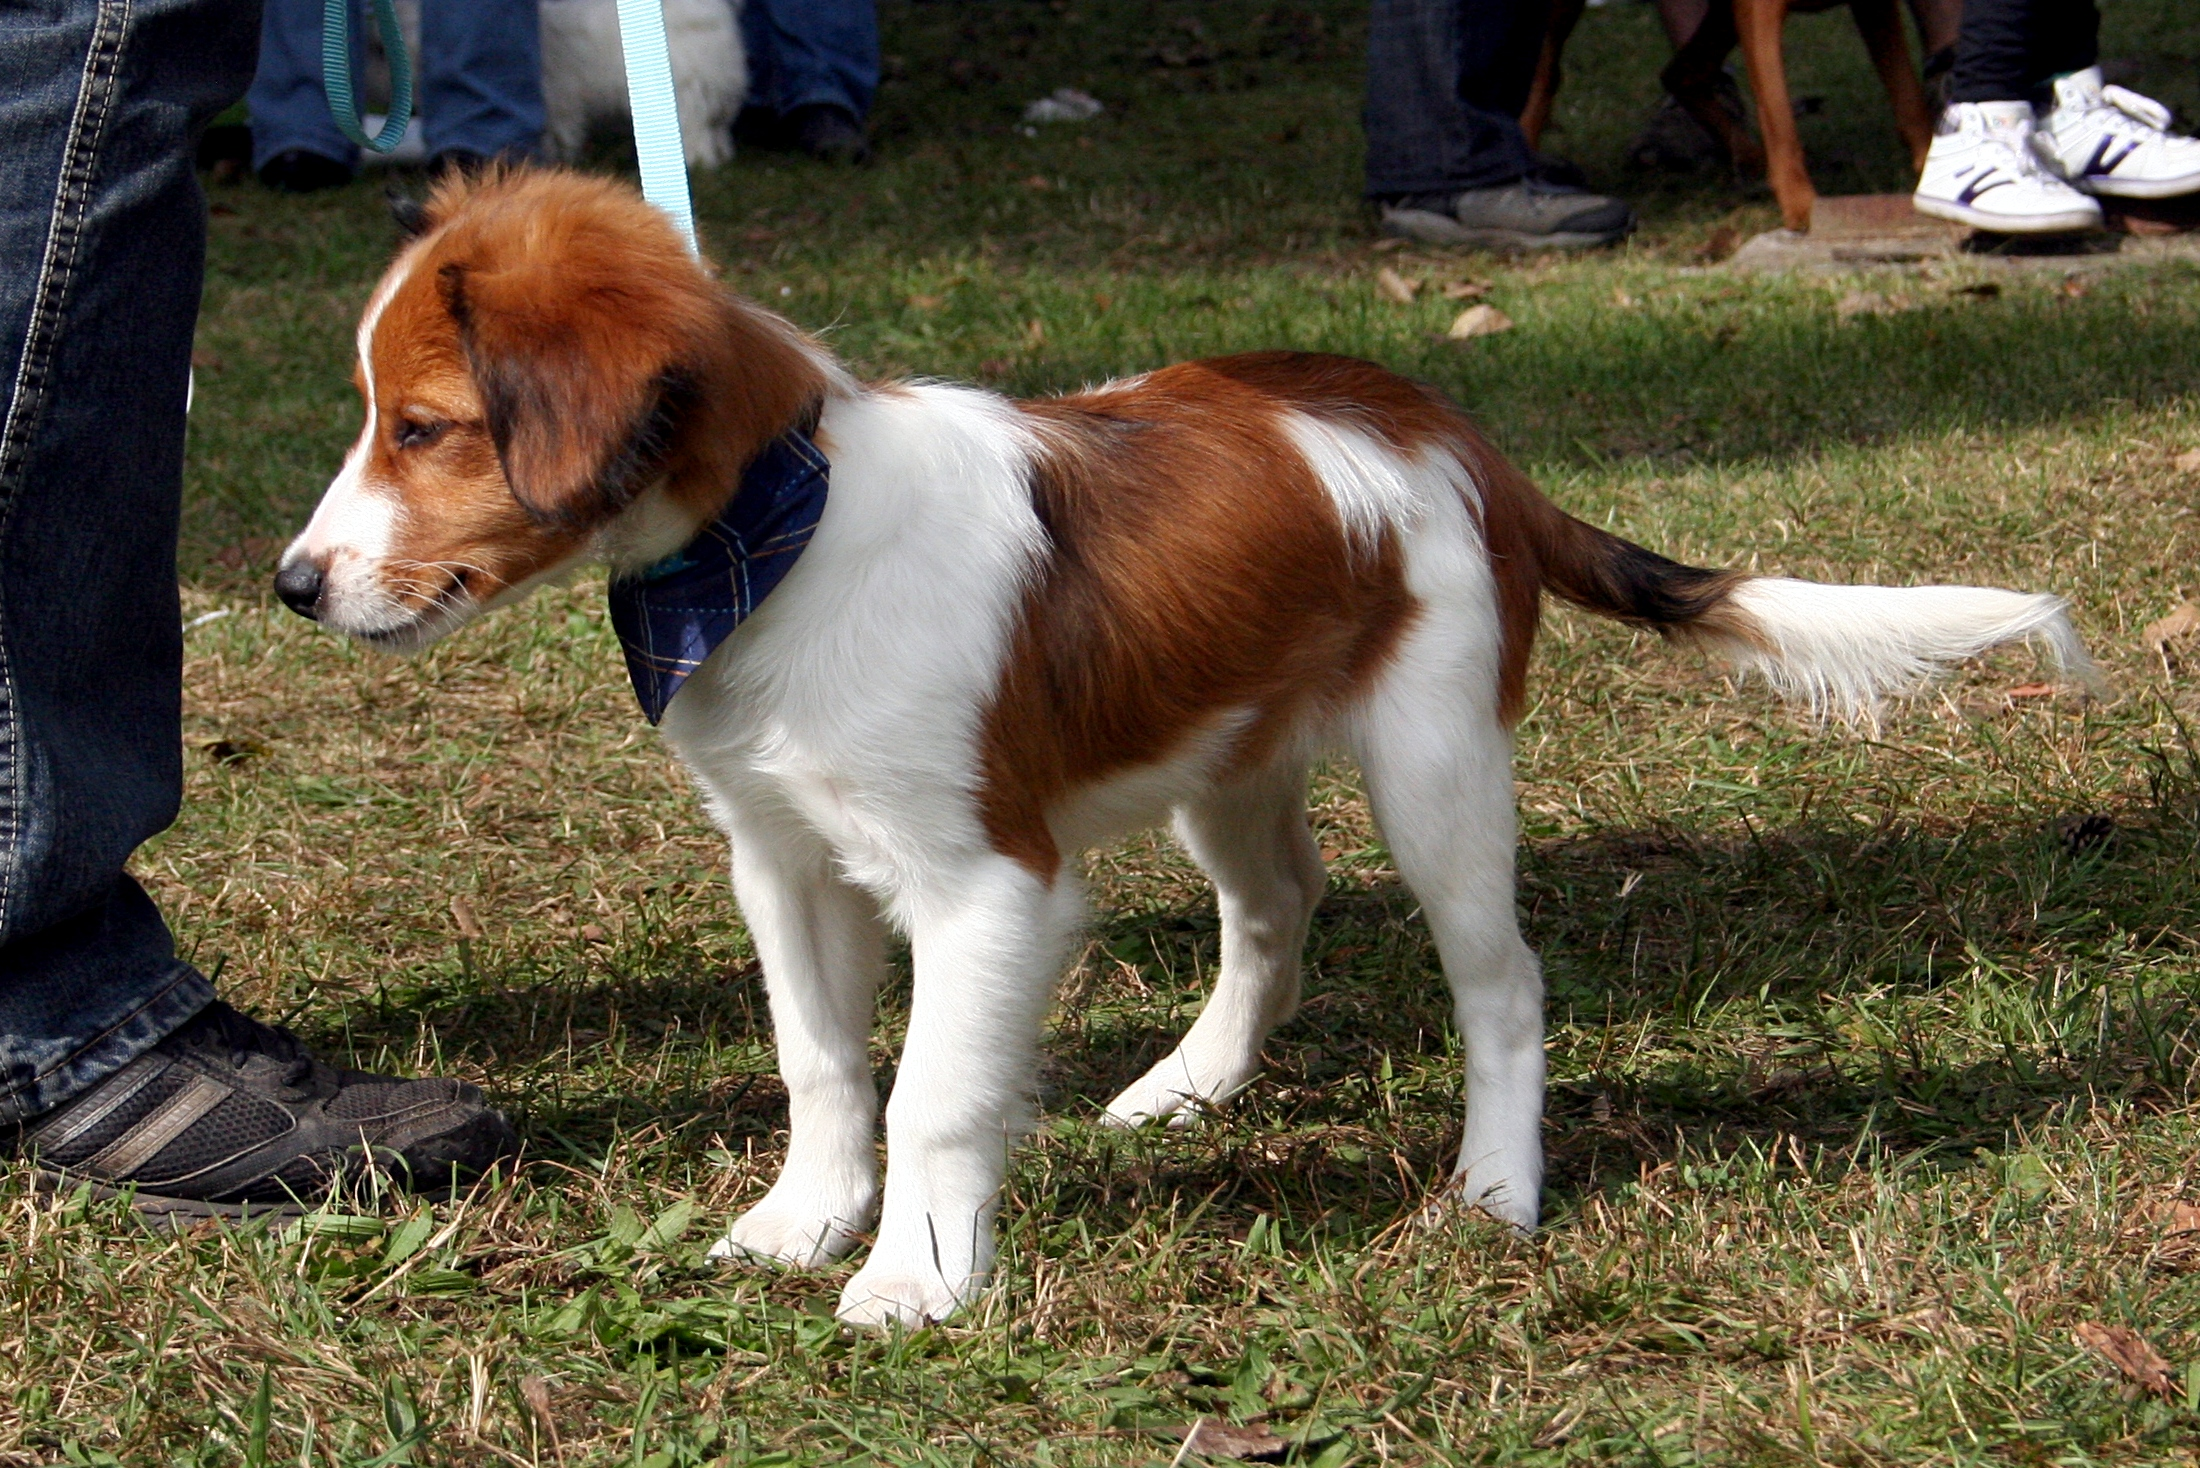 Medium Sized Dog Breeds In India